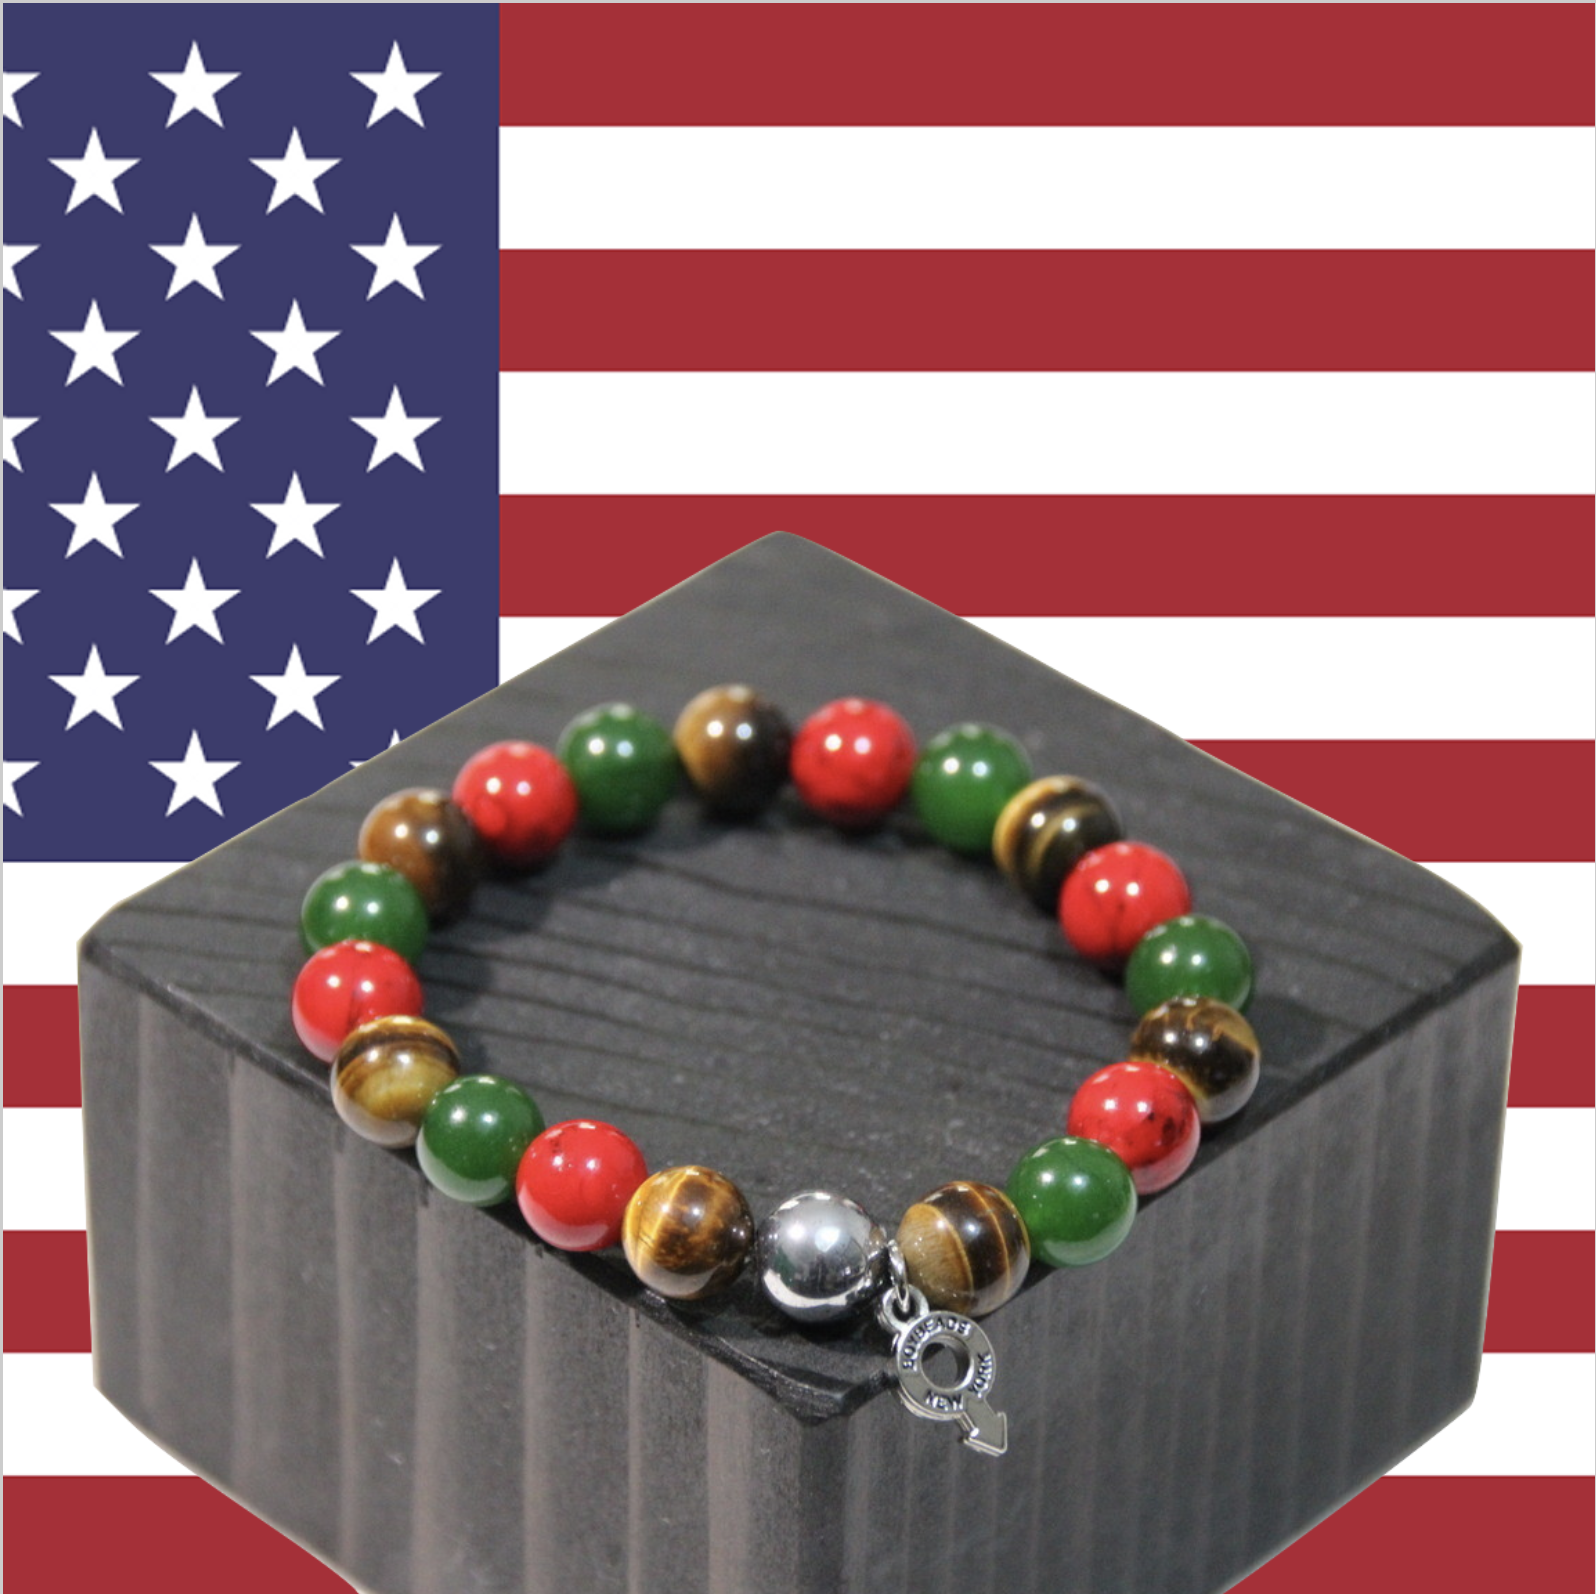 boybeads-holiday-collection-2019-booker-red-tiger-eye-green-jade-beaded-bracelet-for-guys-men-christmas-kwanzaa-2019.png